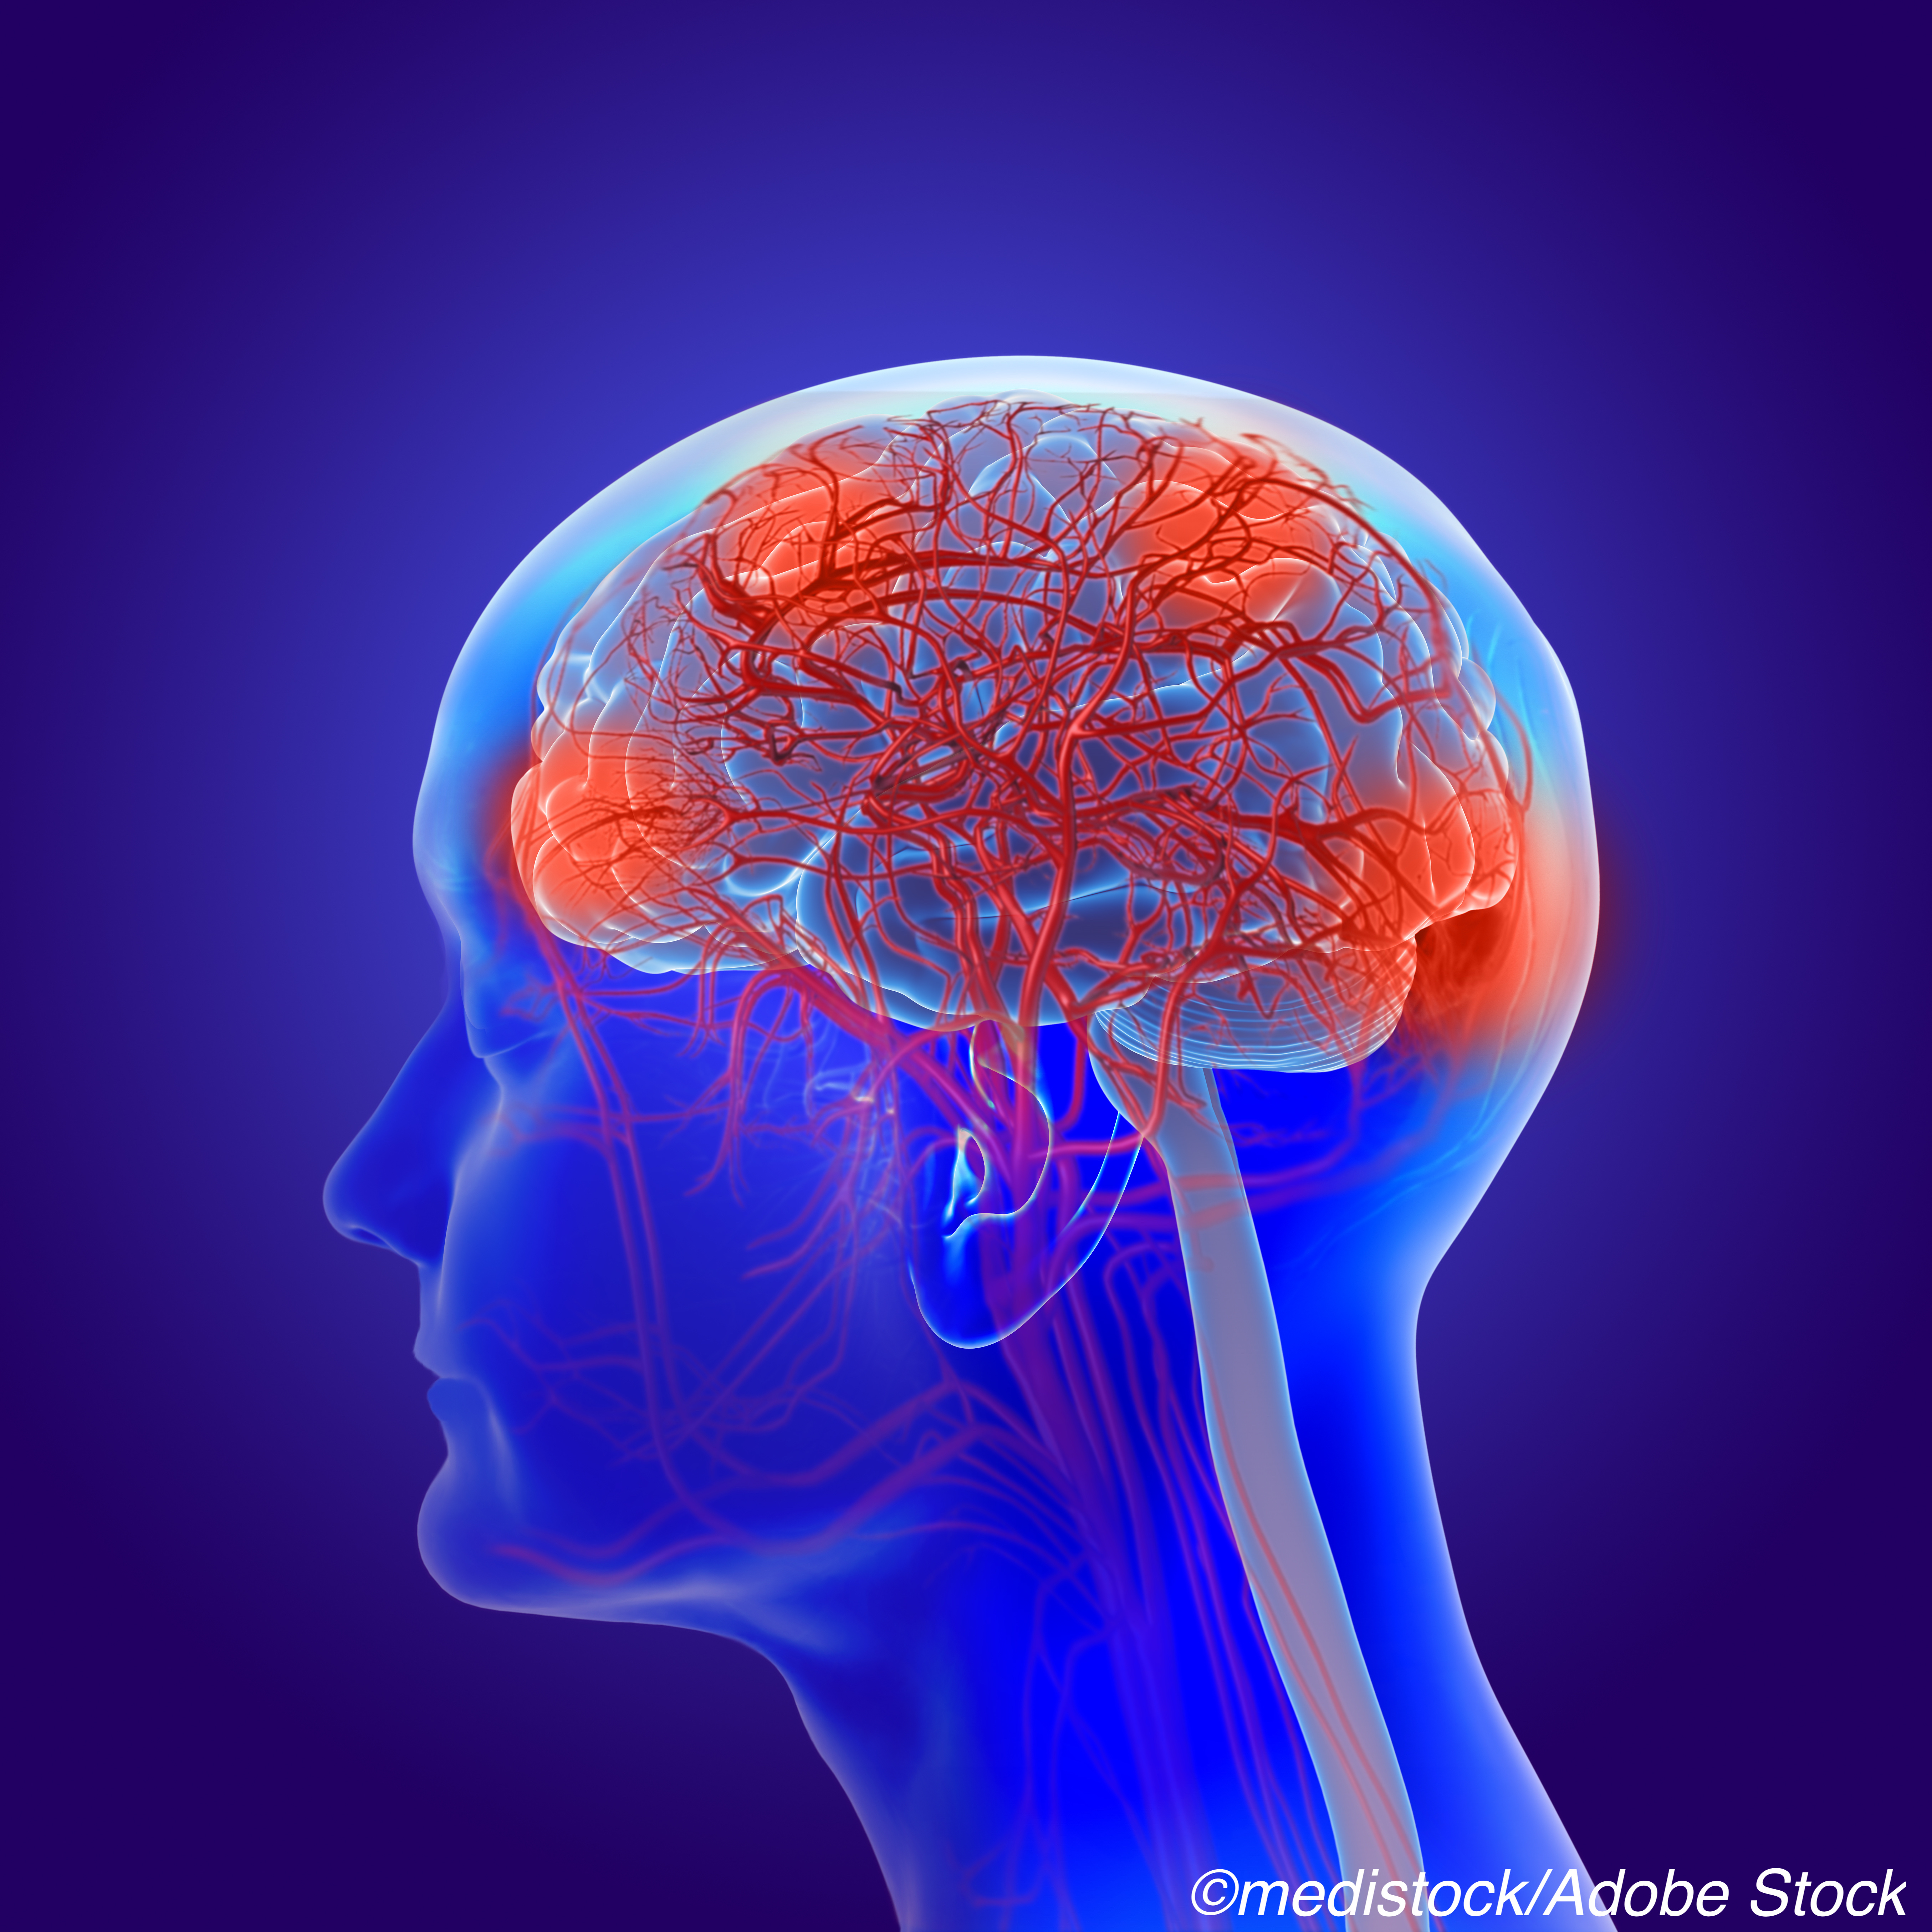 Two Early Parkinson's Biotypes Differ Anatomically, Clinically